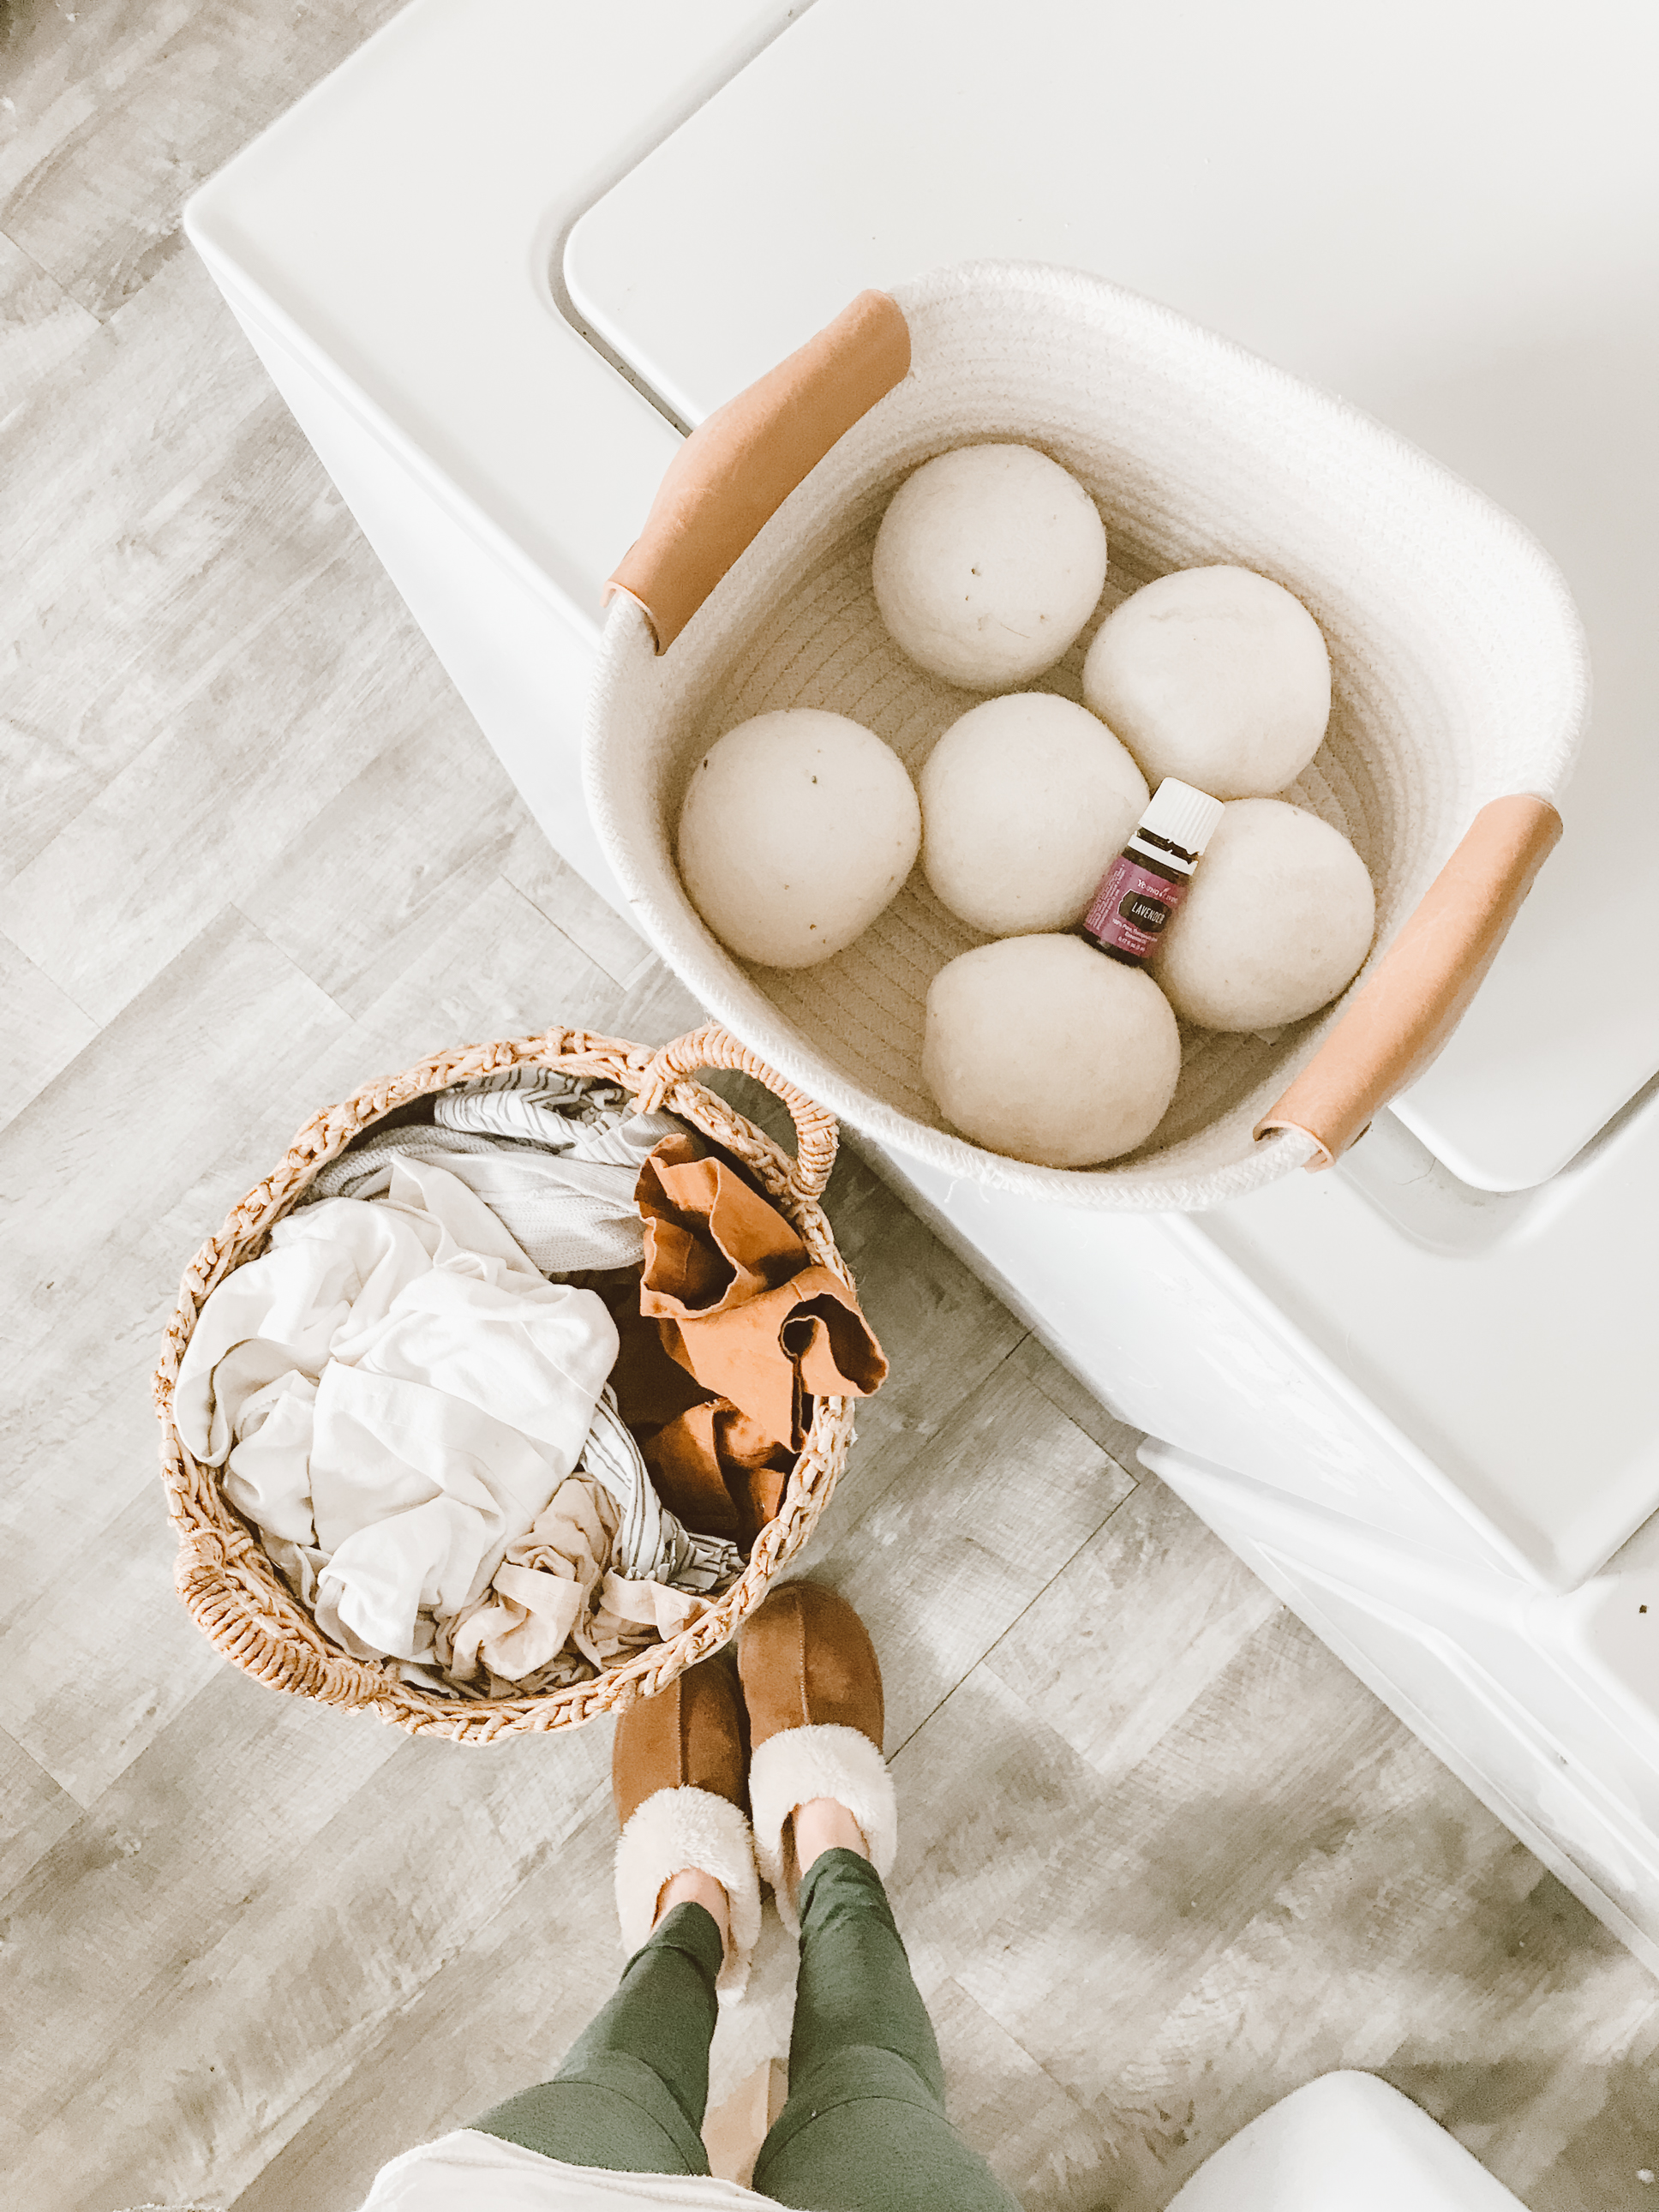 Why you should use dryer balls over dryer sheets